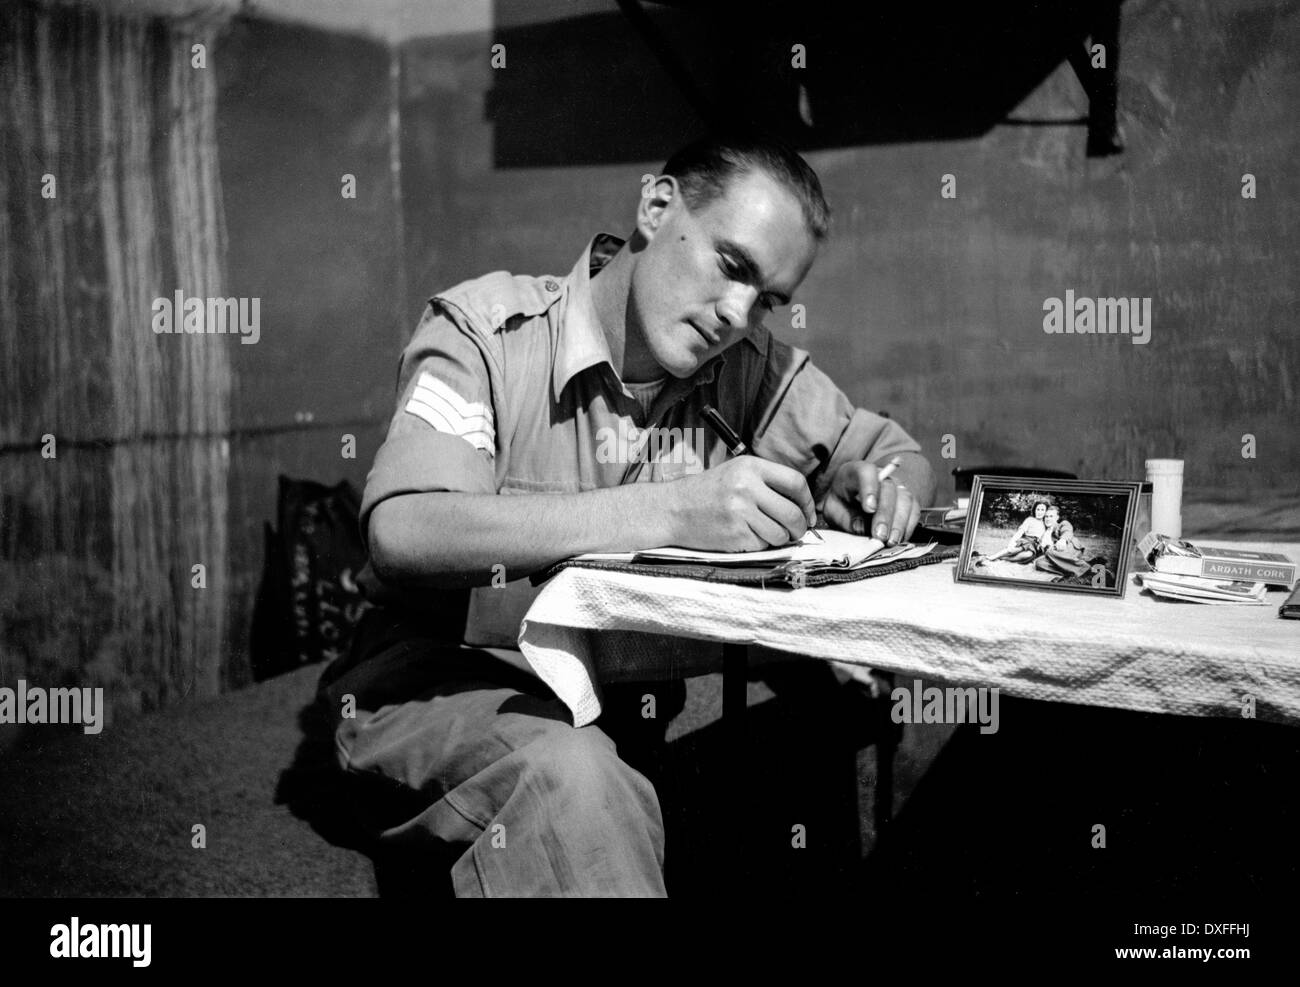 A sergeant in the Royal Army Service Corps (RASC) writing home during WW2 from Egypt. - Stock Image